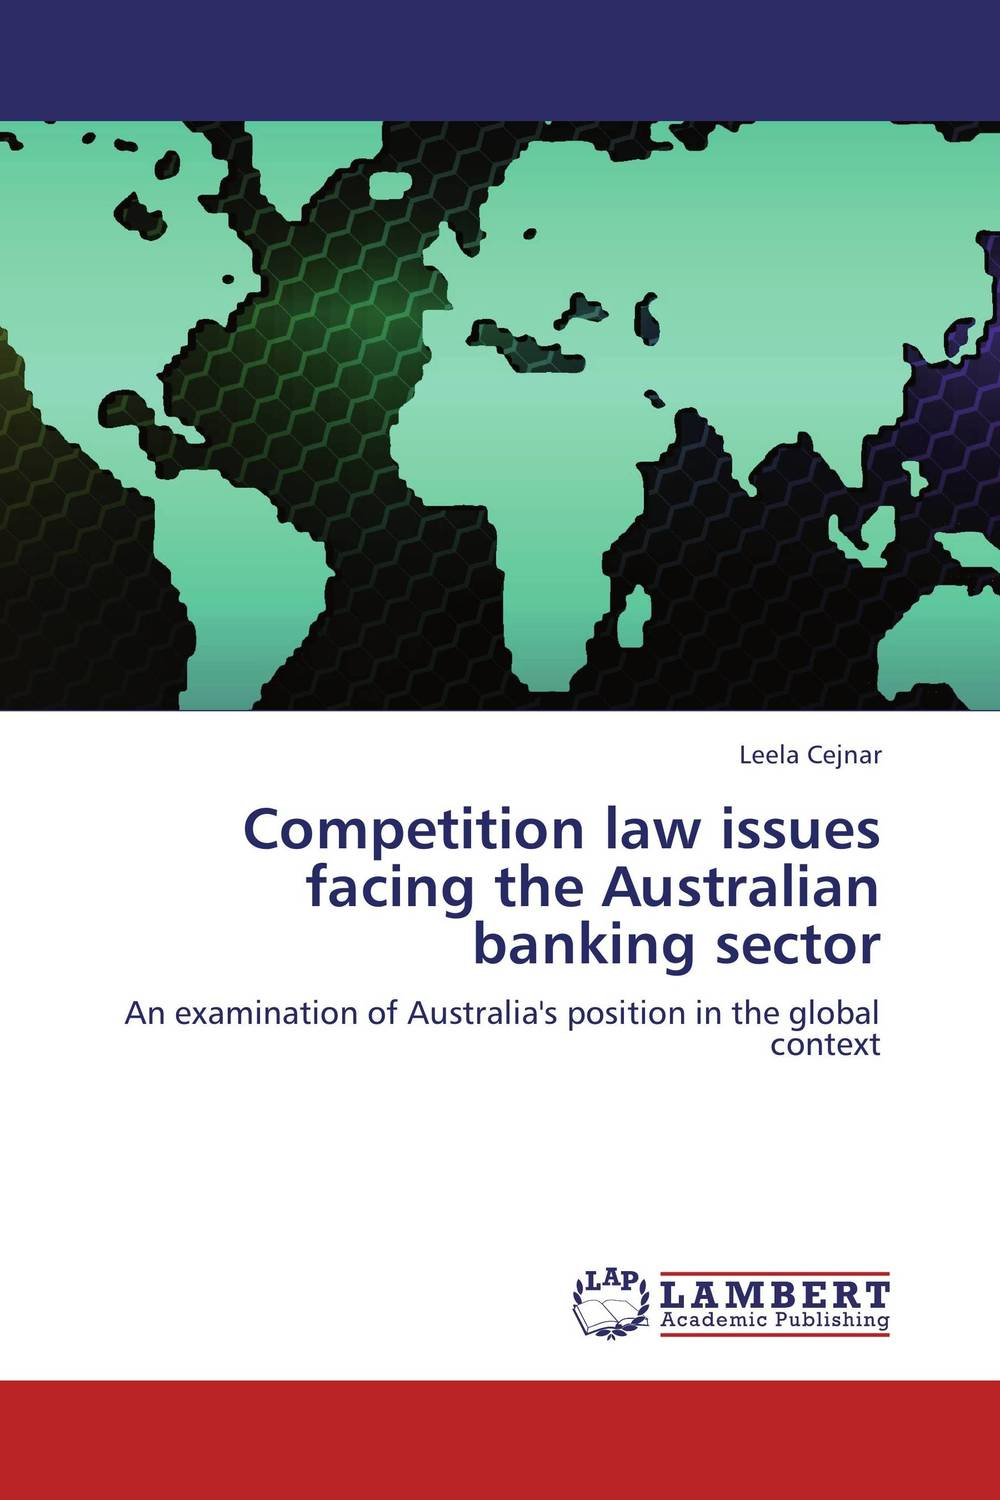 Competition law issues facing the Australian banking sector